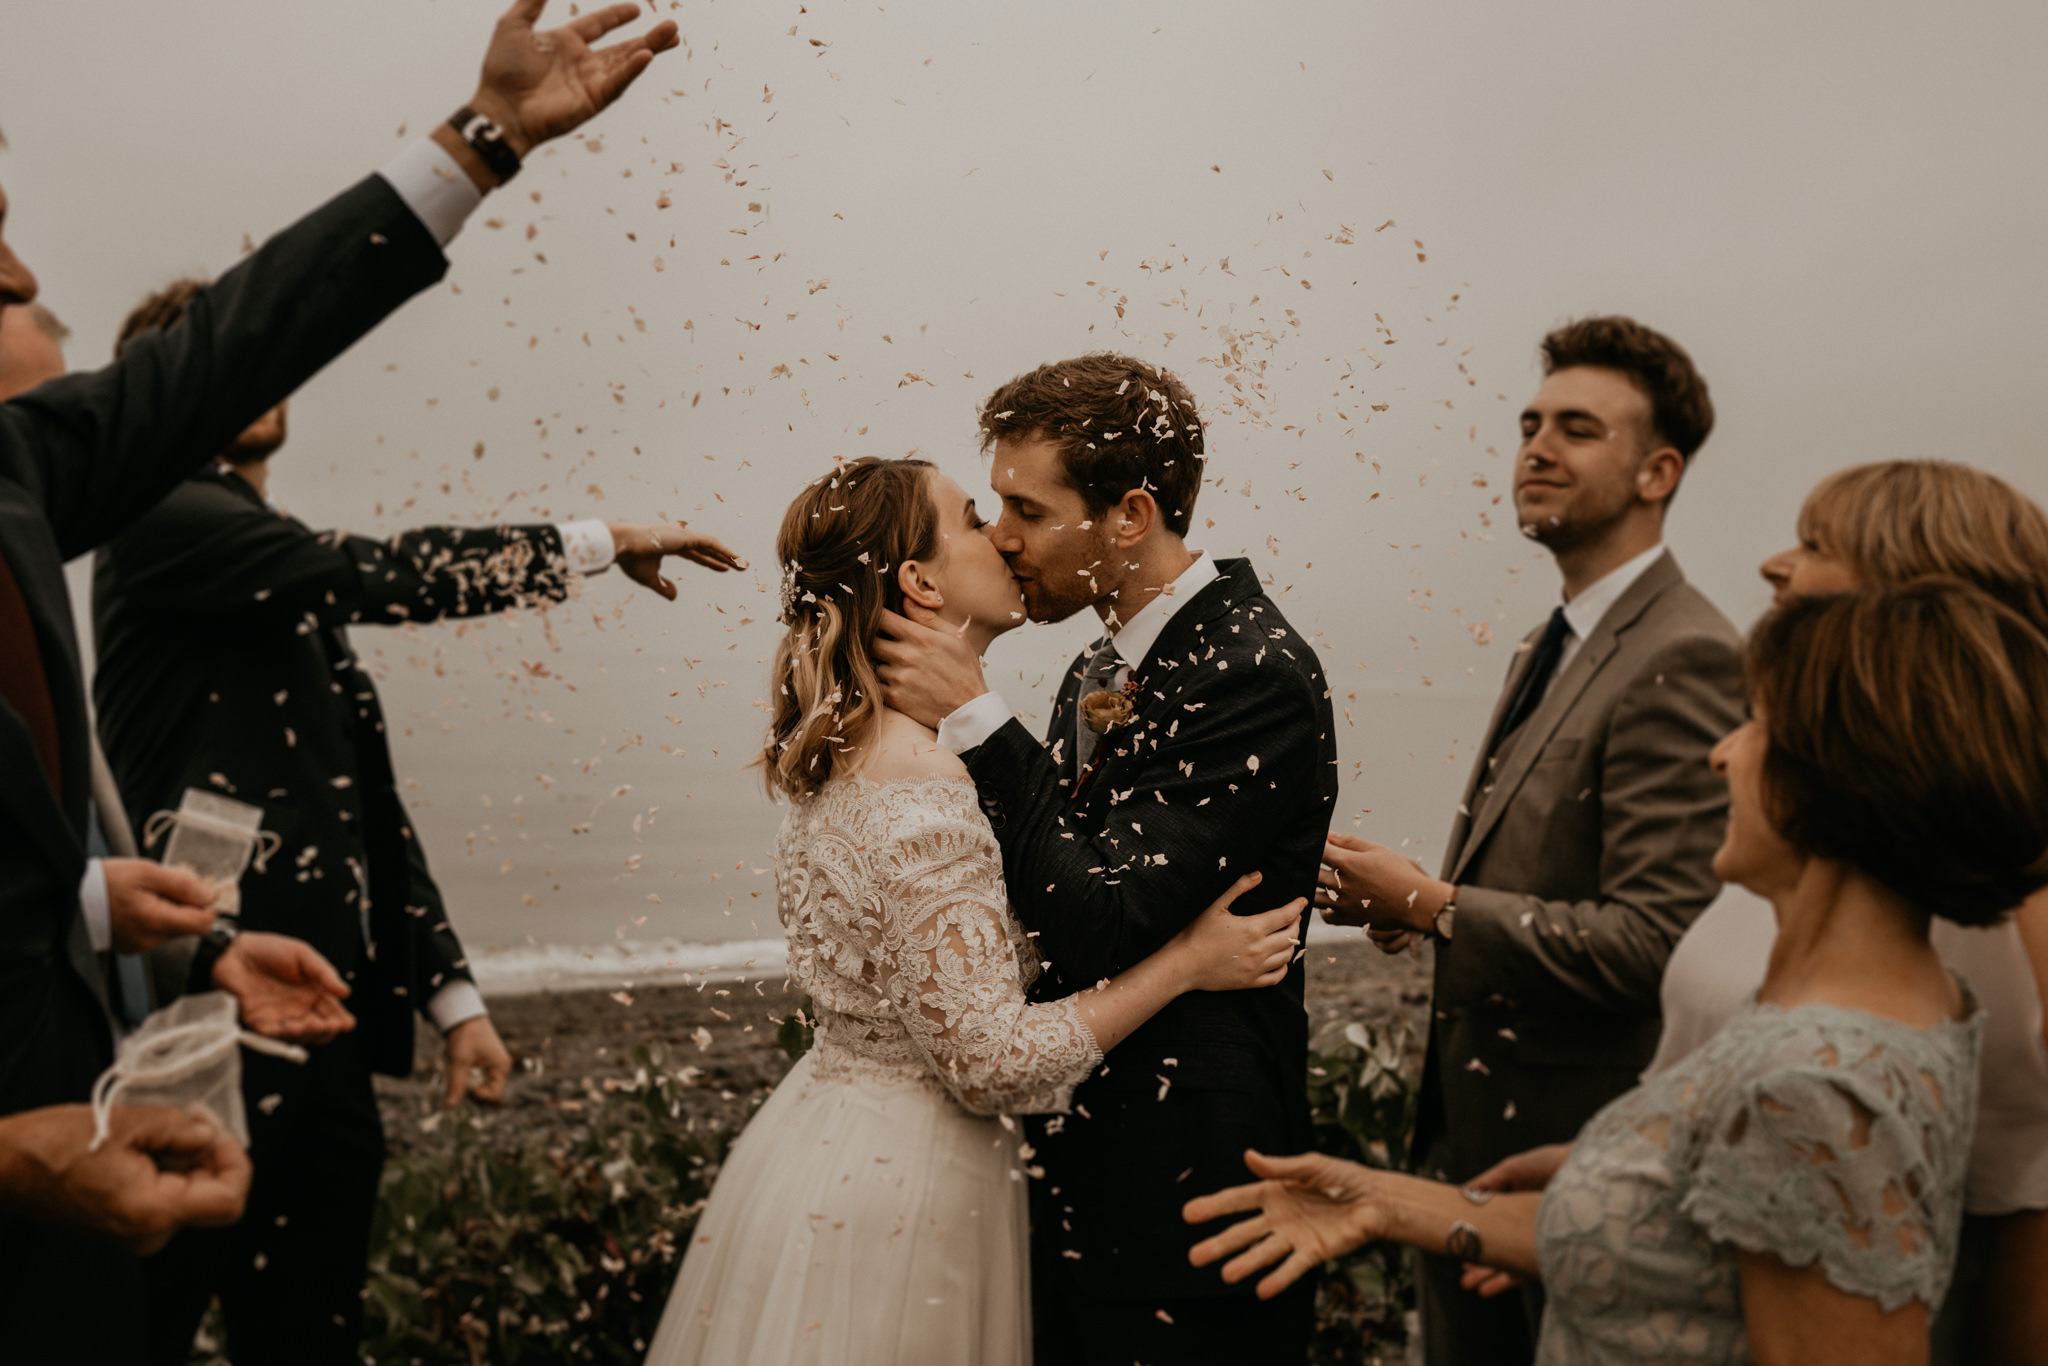 A wedding couple is kissing each other and their guests are cheering, photographed by a wedding photographer Seattle.